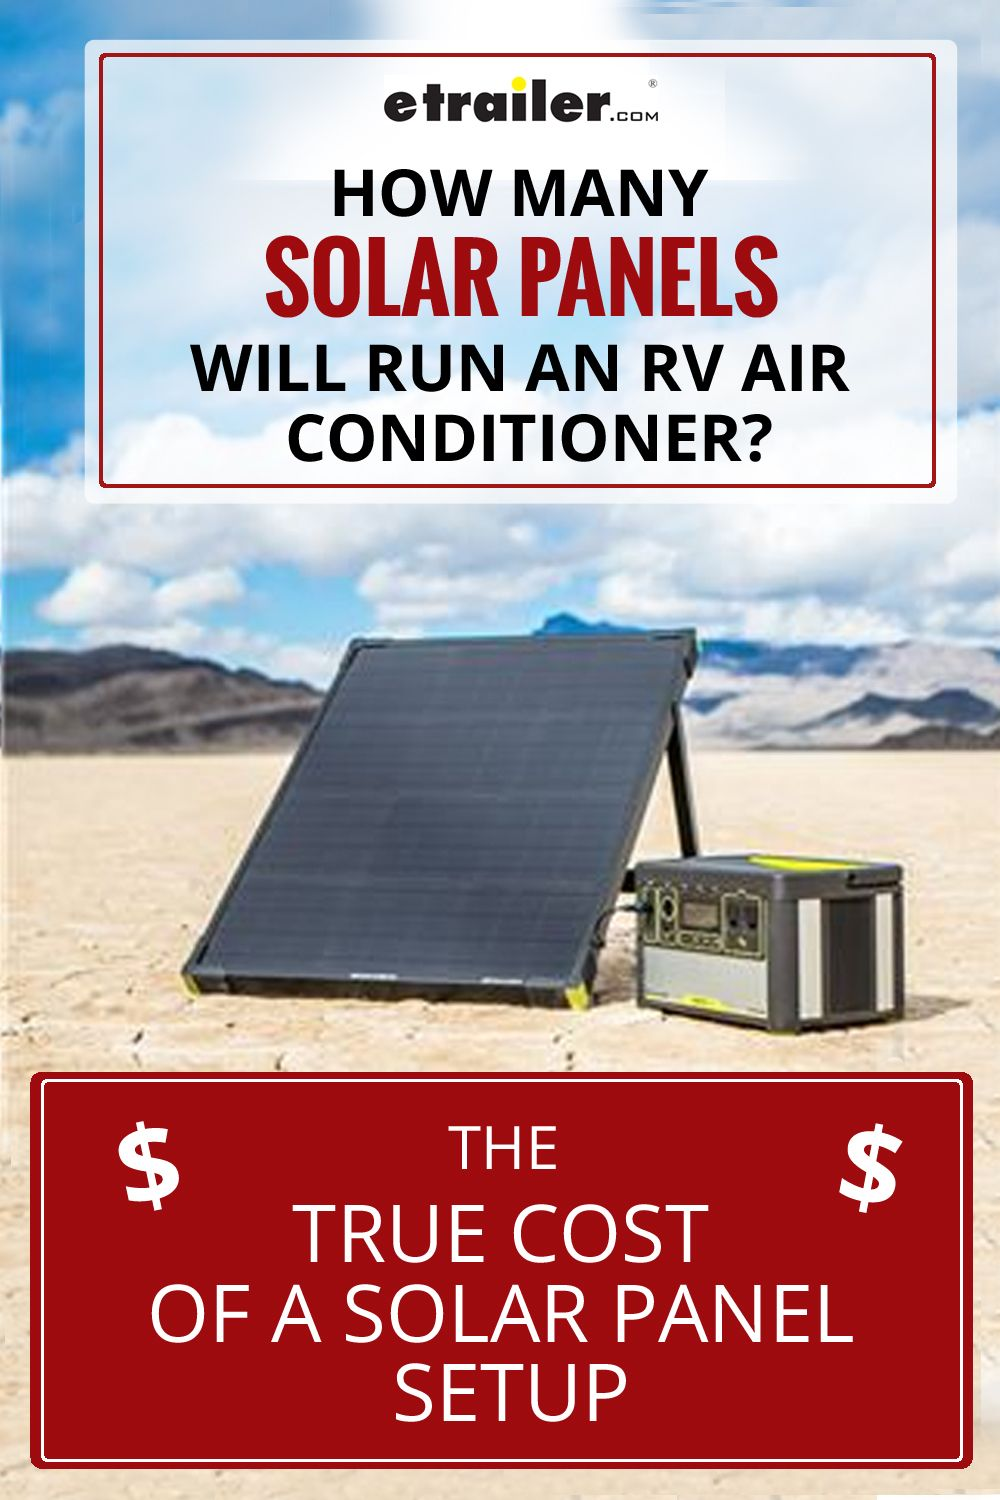 There S No Question That Solar Panels Are A Great Green Option For Supplying Power To Your Rv When Boondocking If You Do Solar Panels Solar Rv Air Conditioner